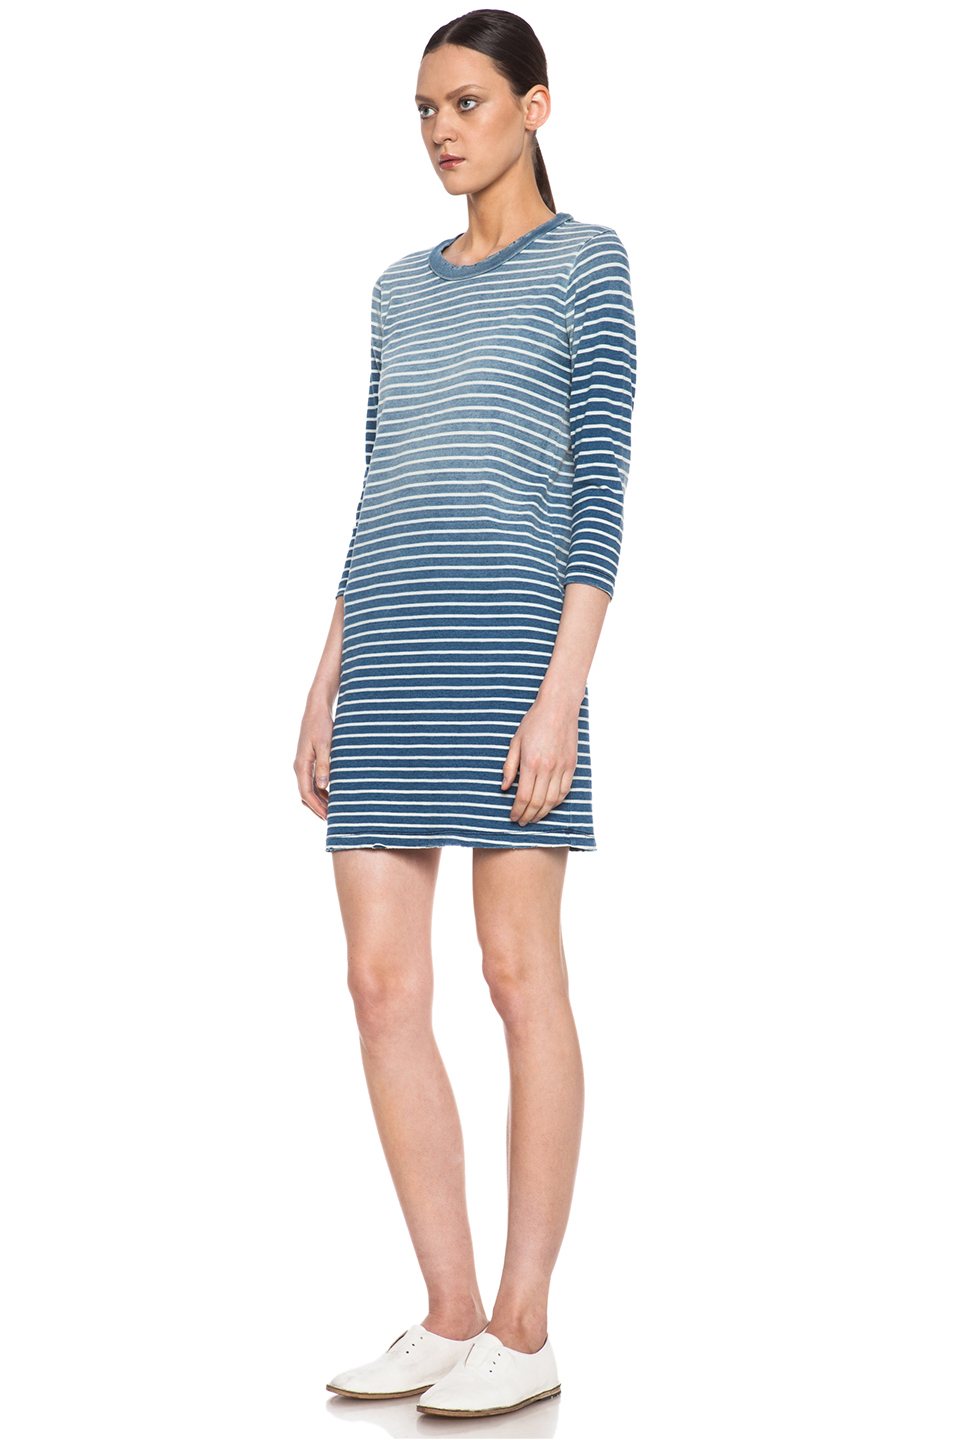 Current/Elliott|Cotton Tee Dress in Indigo Stripe